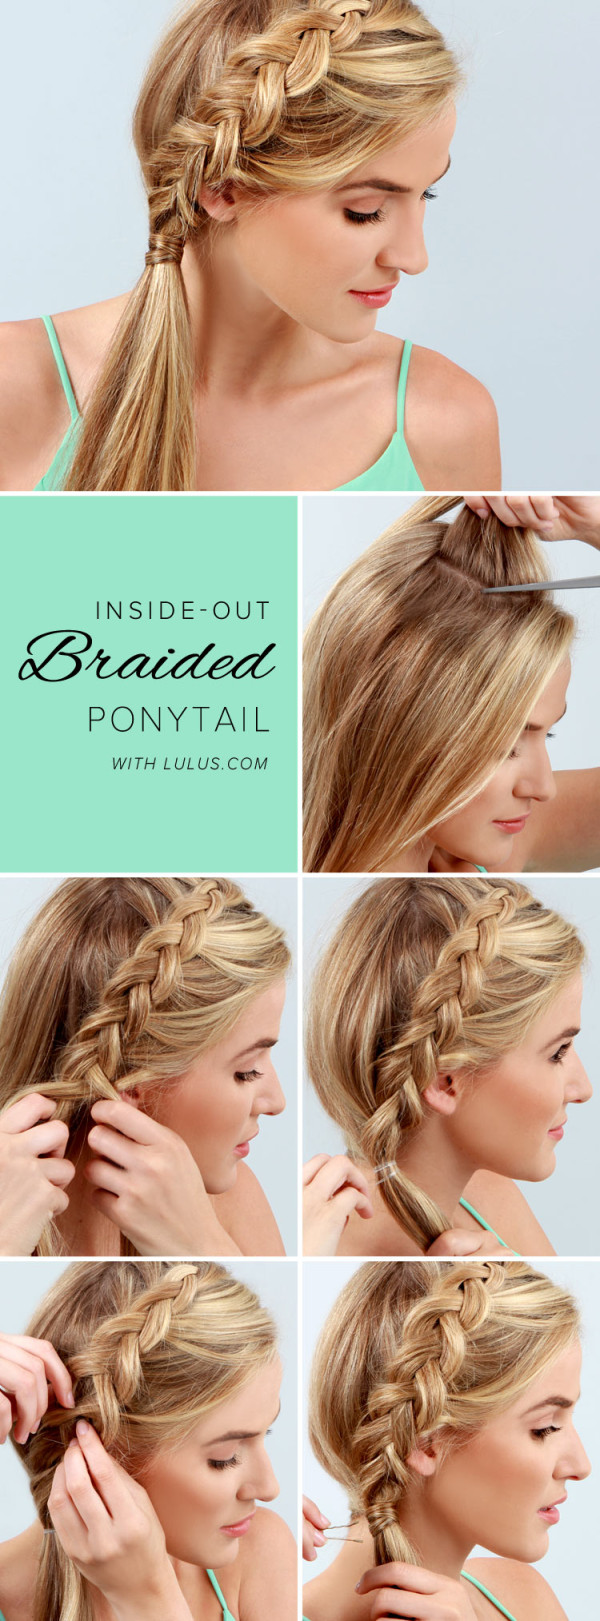 19 lazy girls hairstyle diy ideas for all busy mornings and